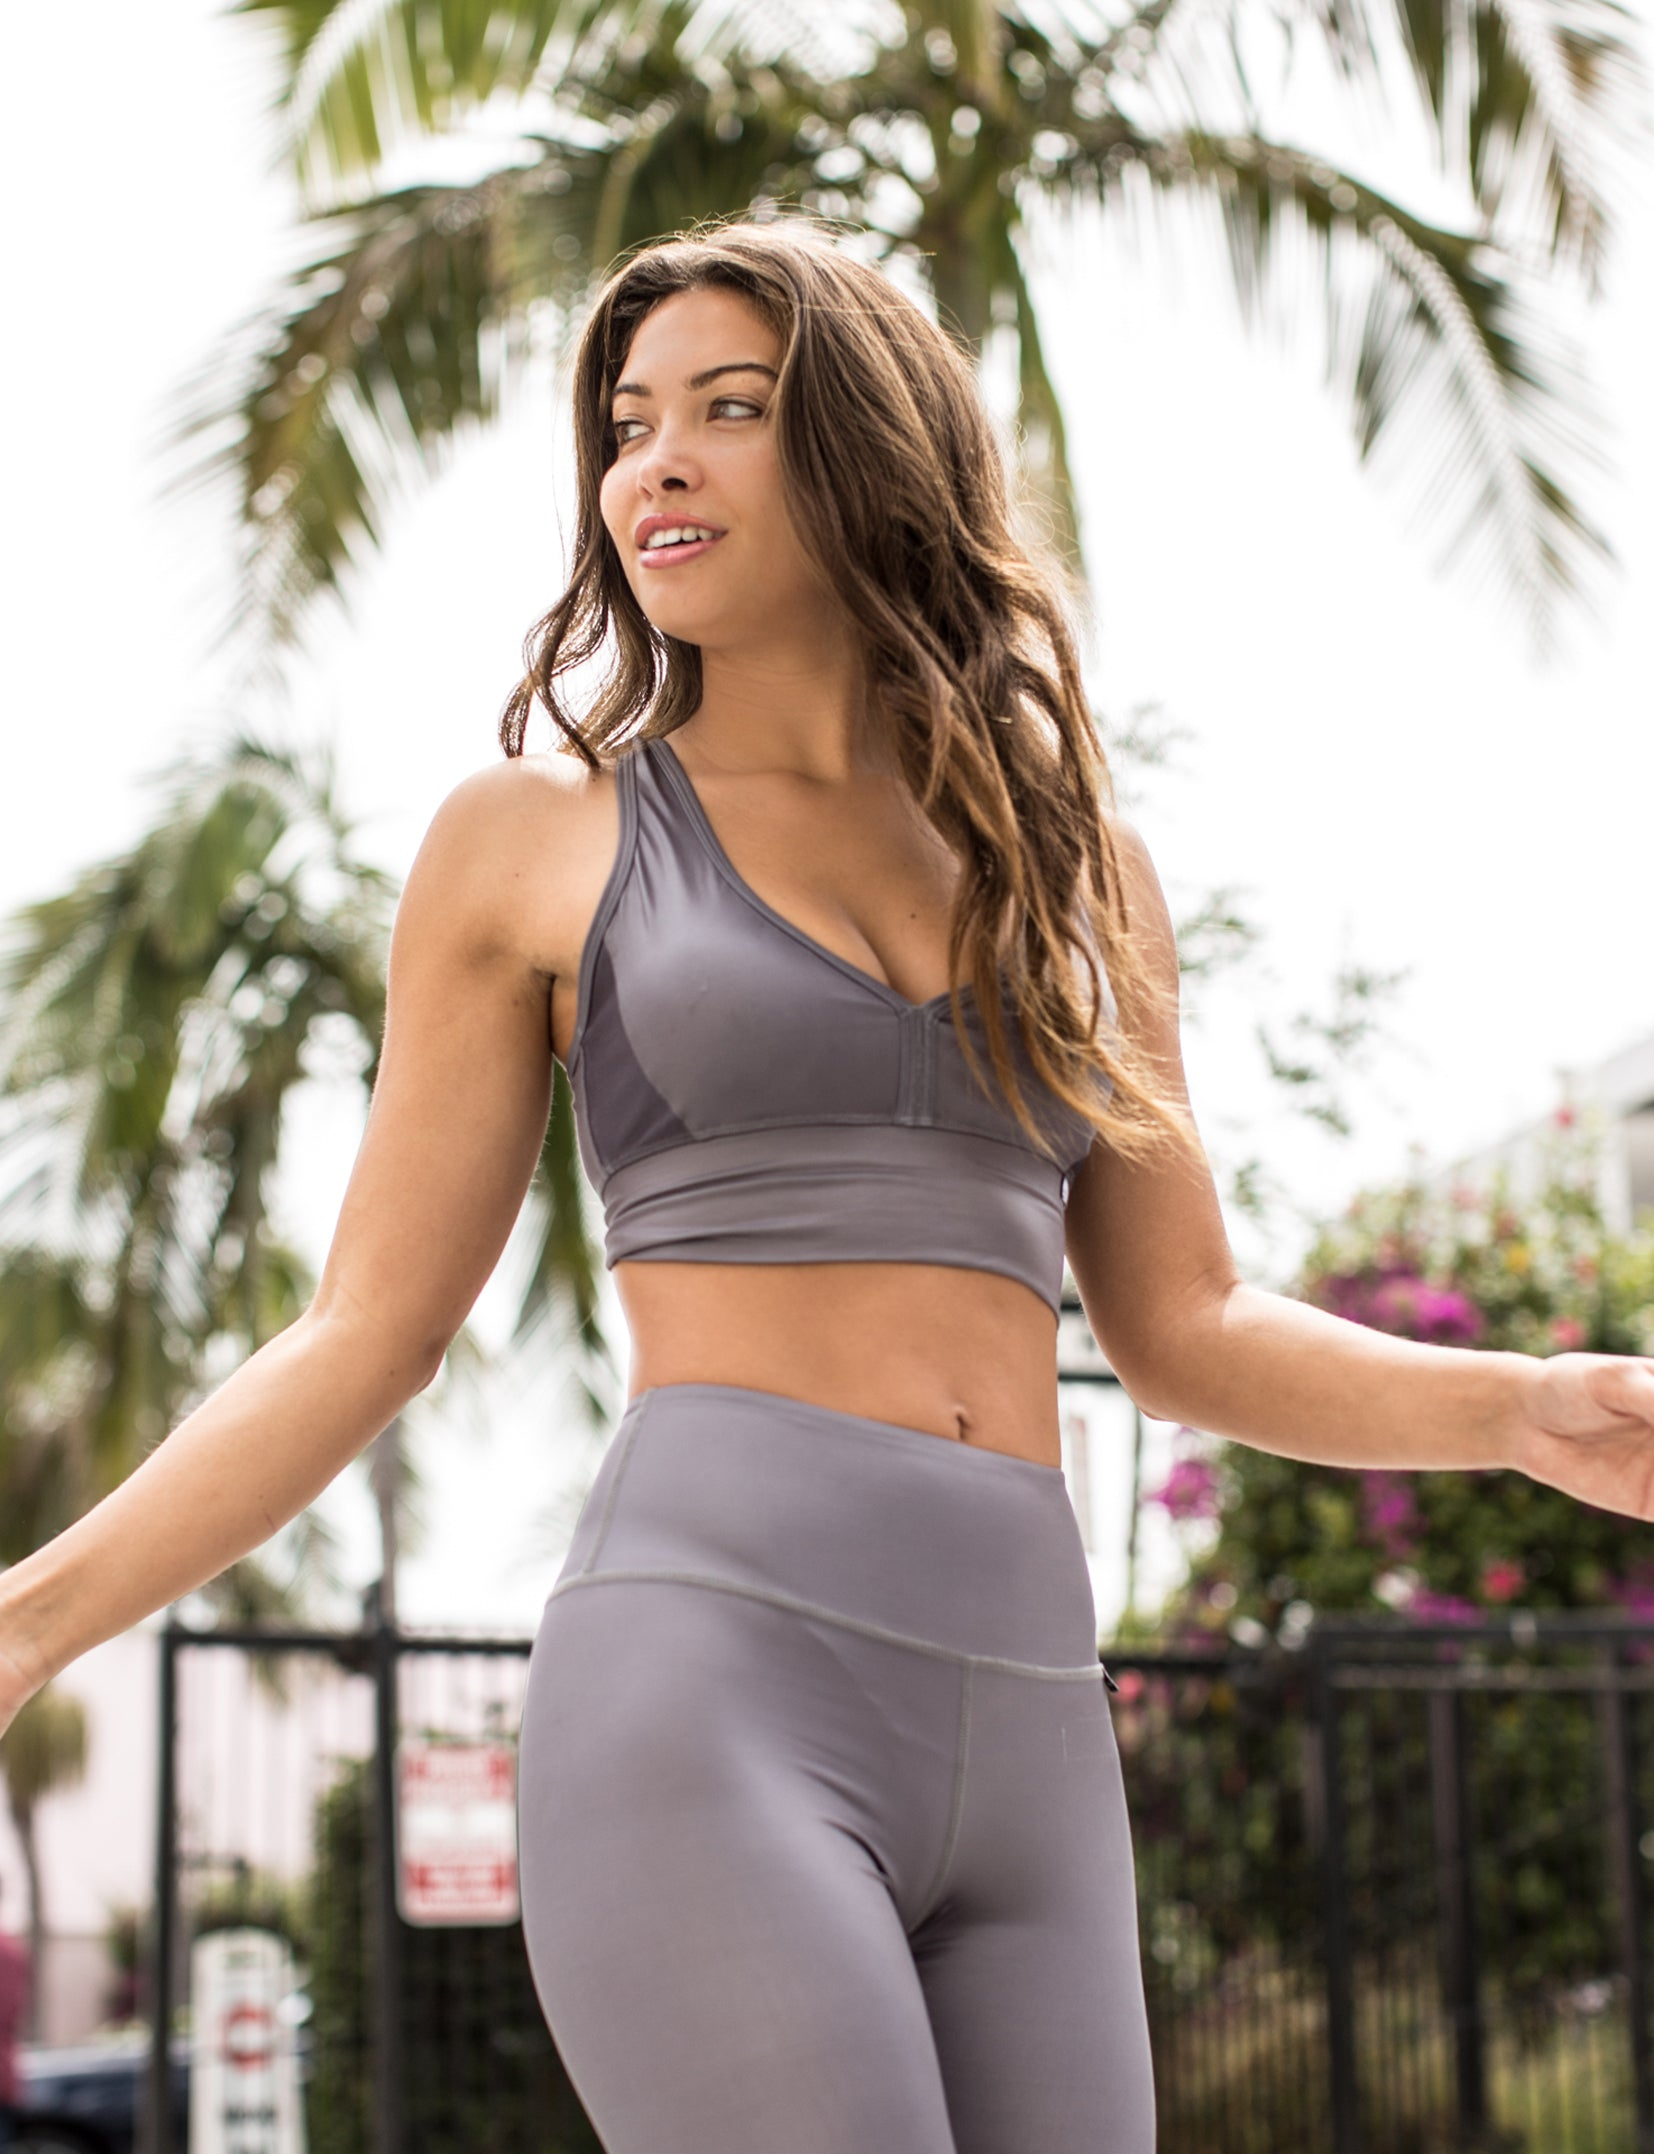 Activewear womens, Nubyen activewear, workout clothes, activewear, womens activewear pants, womens, yoga, active wear, activewear, athletics leggings, women's activewear, womens workout clothes, gym outfits for women, nubyen activewear, nubyen second skin, nubyen Topshop, topshop activewear, asos, asos activewear, nubyen asos